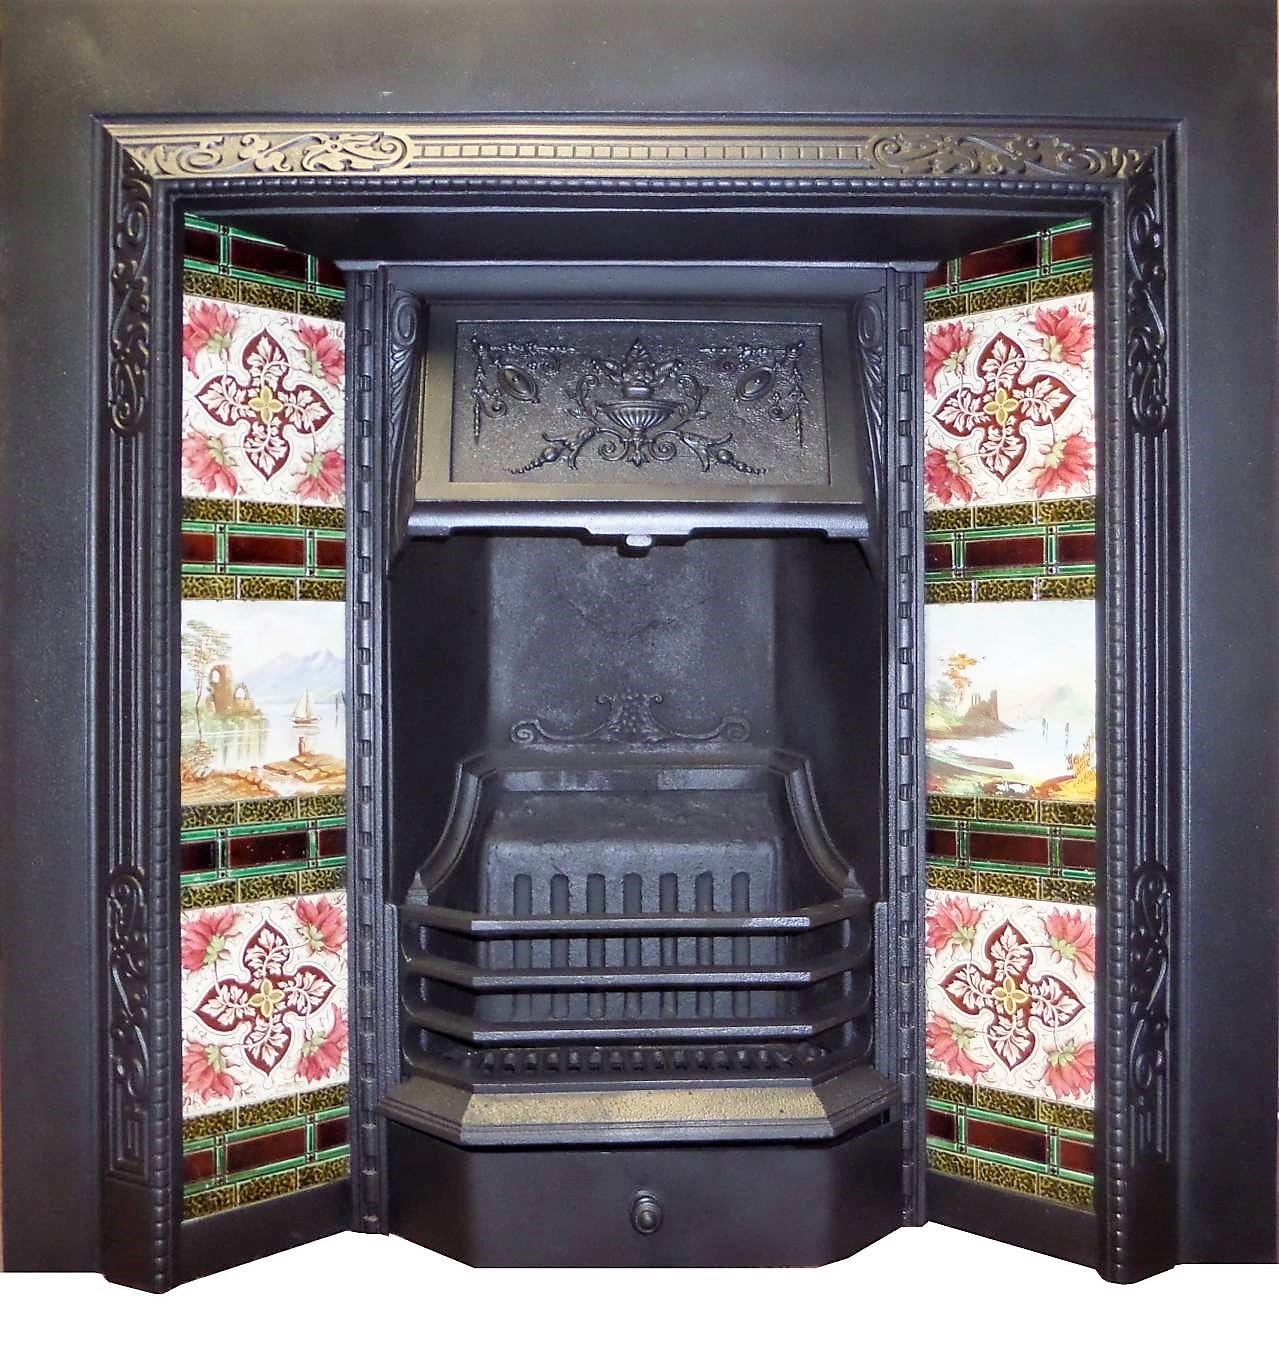 antique victorian cast iron fireplace insert with tiles